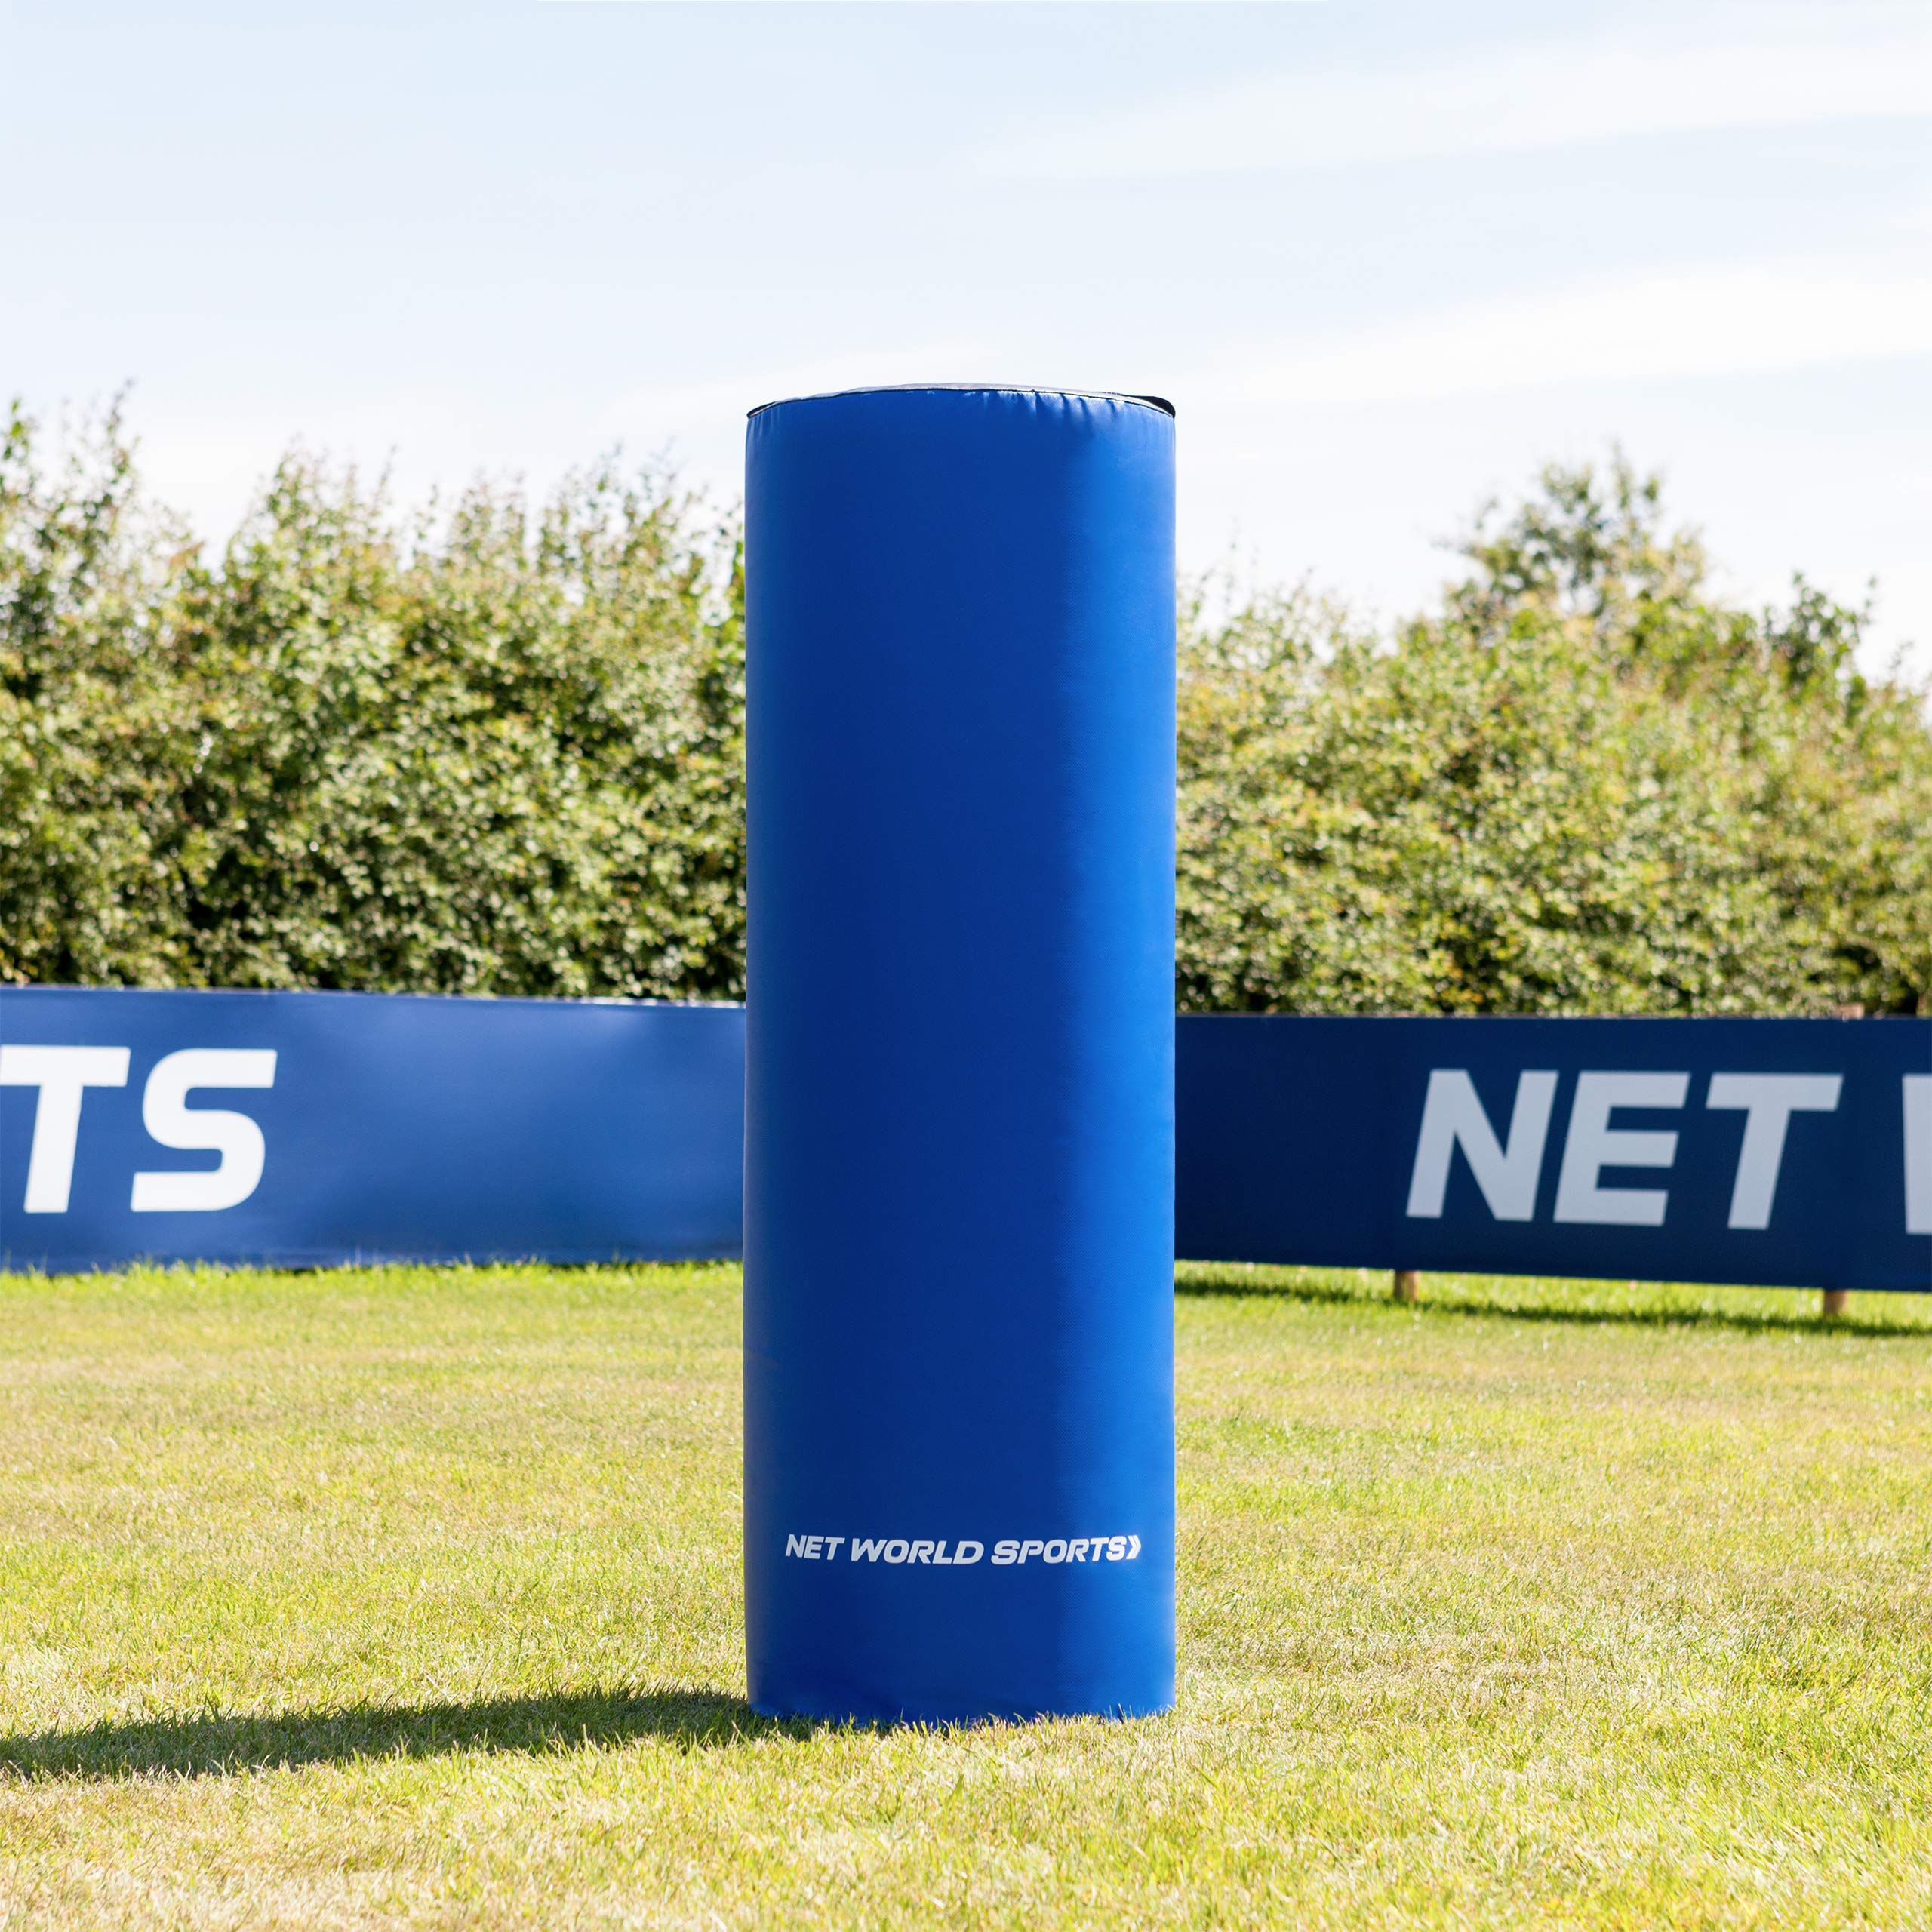 Net World Sports Full Height Football Tackle Dummies - Weather and Tear Proof PVC - 5